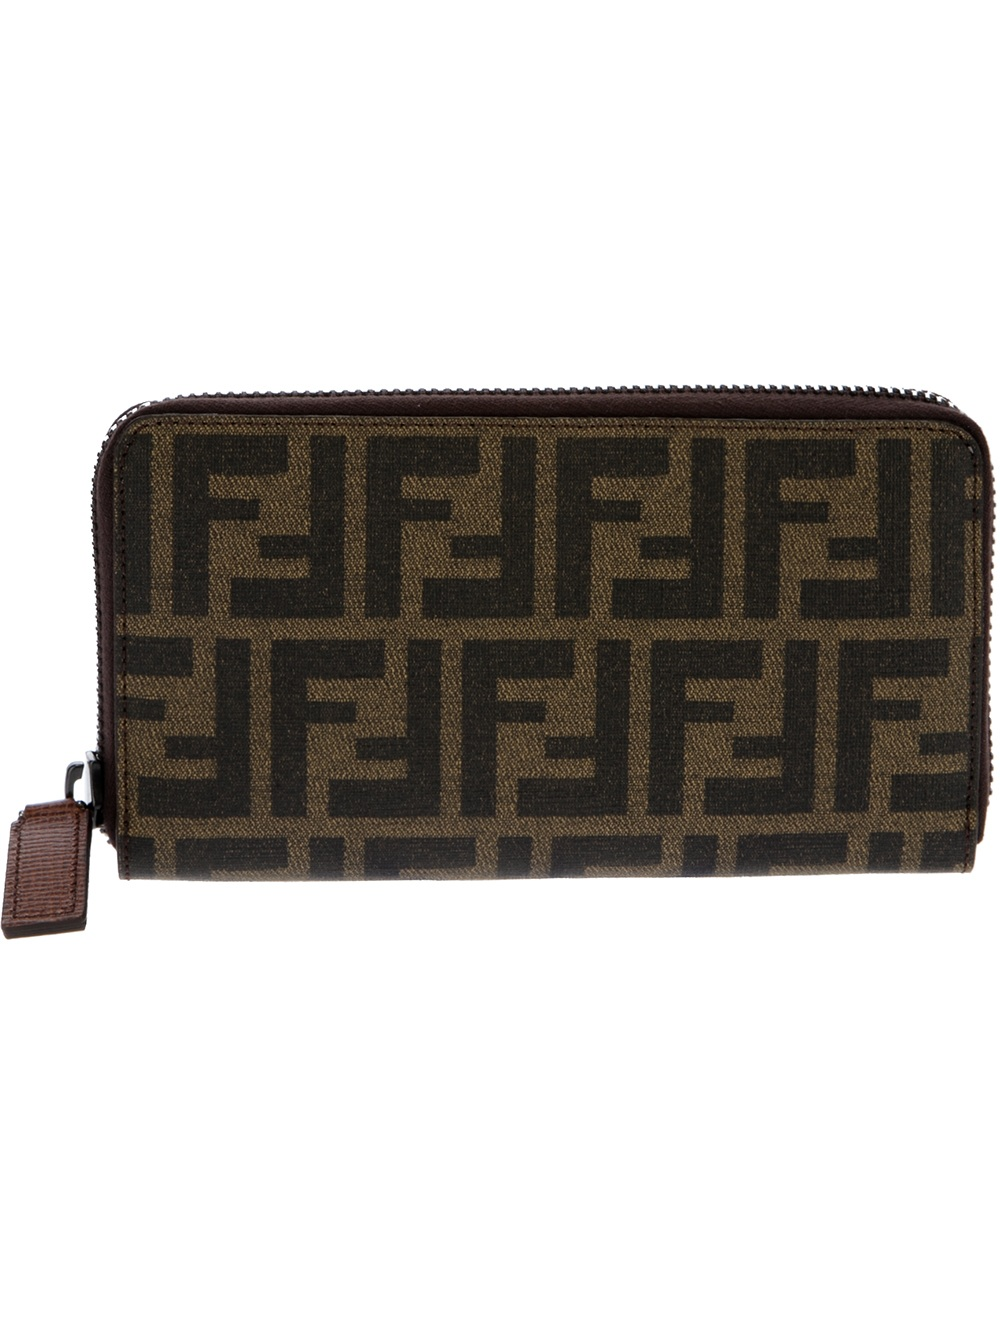 Fendi logo zip around wallet Pick A Best For Sale Buy Cheap Looking For Free Shipping Recommend fdQdo55